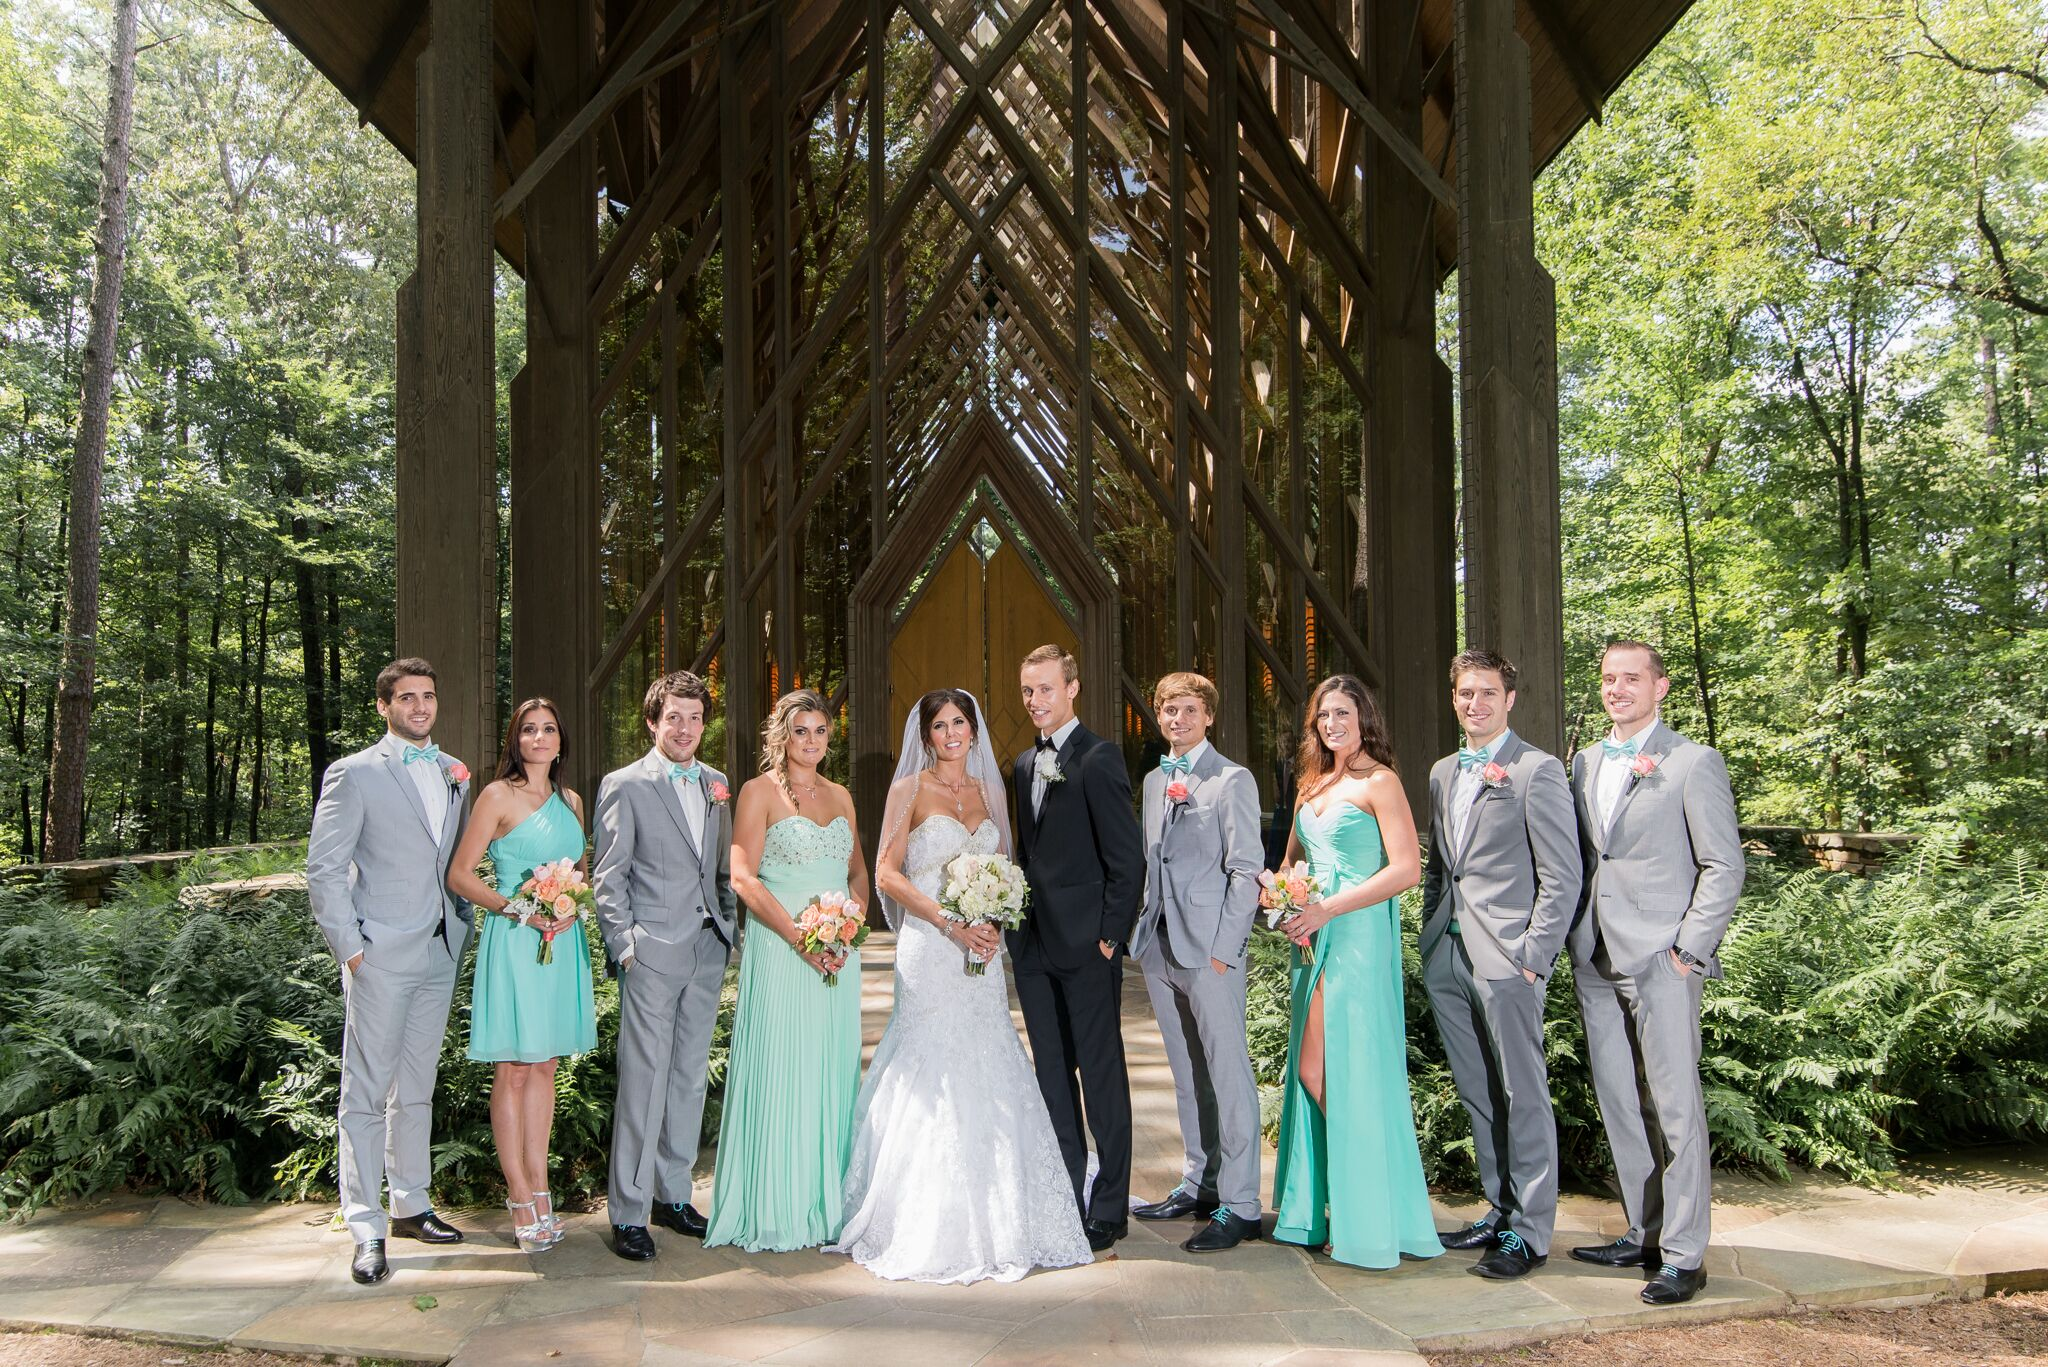 Mint Bridesmaid Dresses And Gray Groomsmen Suits